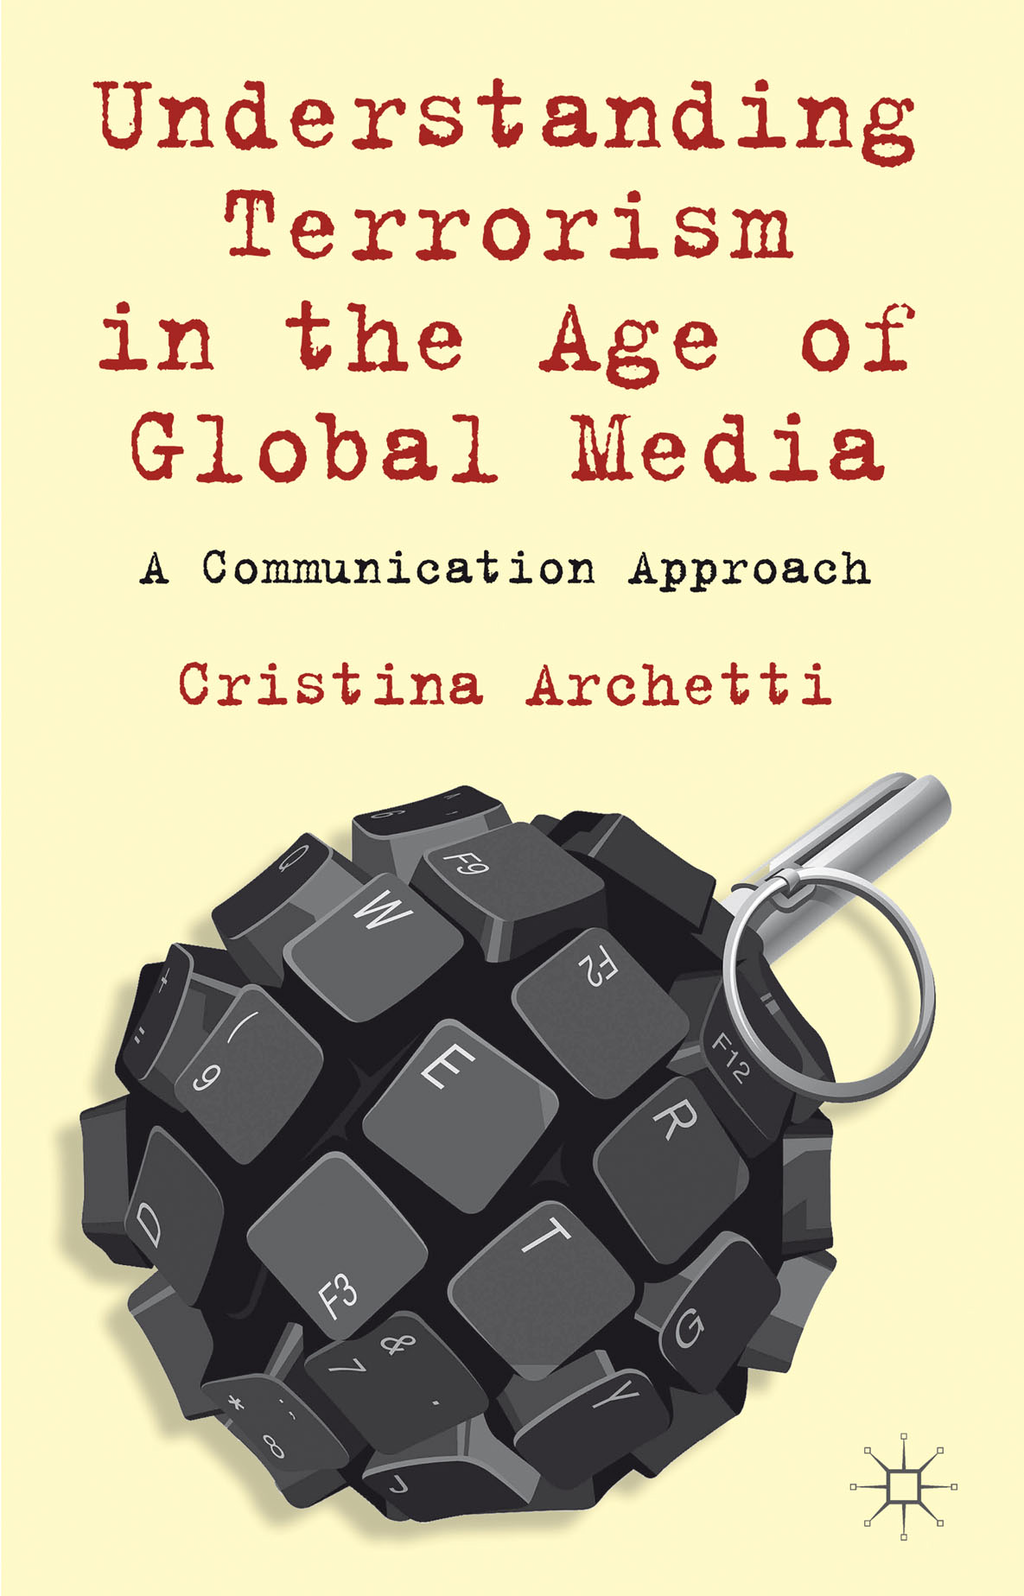 Understanding Terrorism in the Age of Global Media A Communication Approach